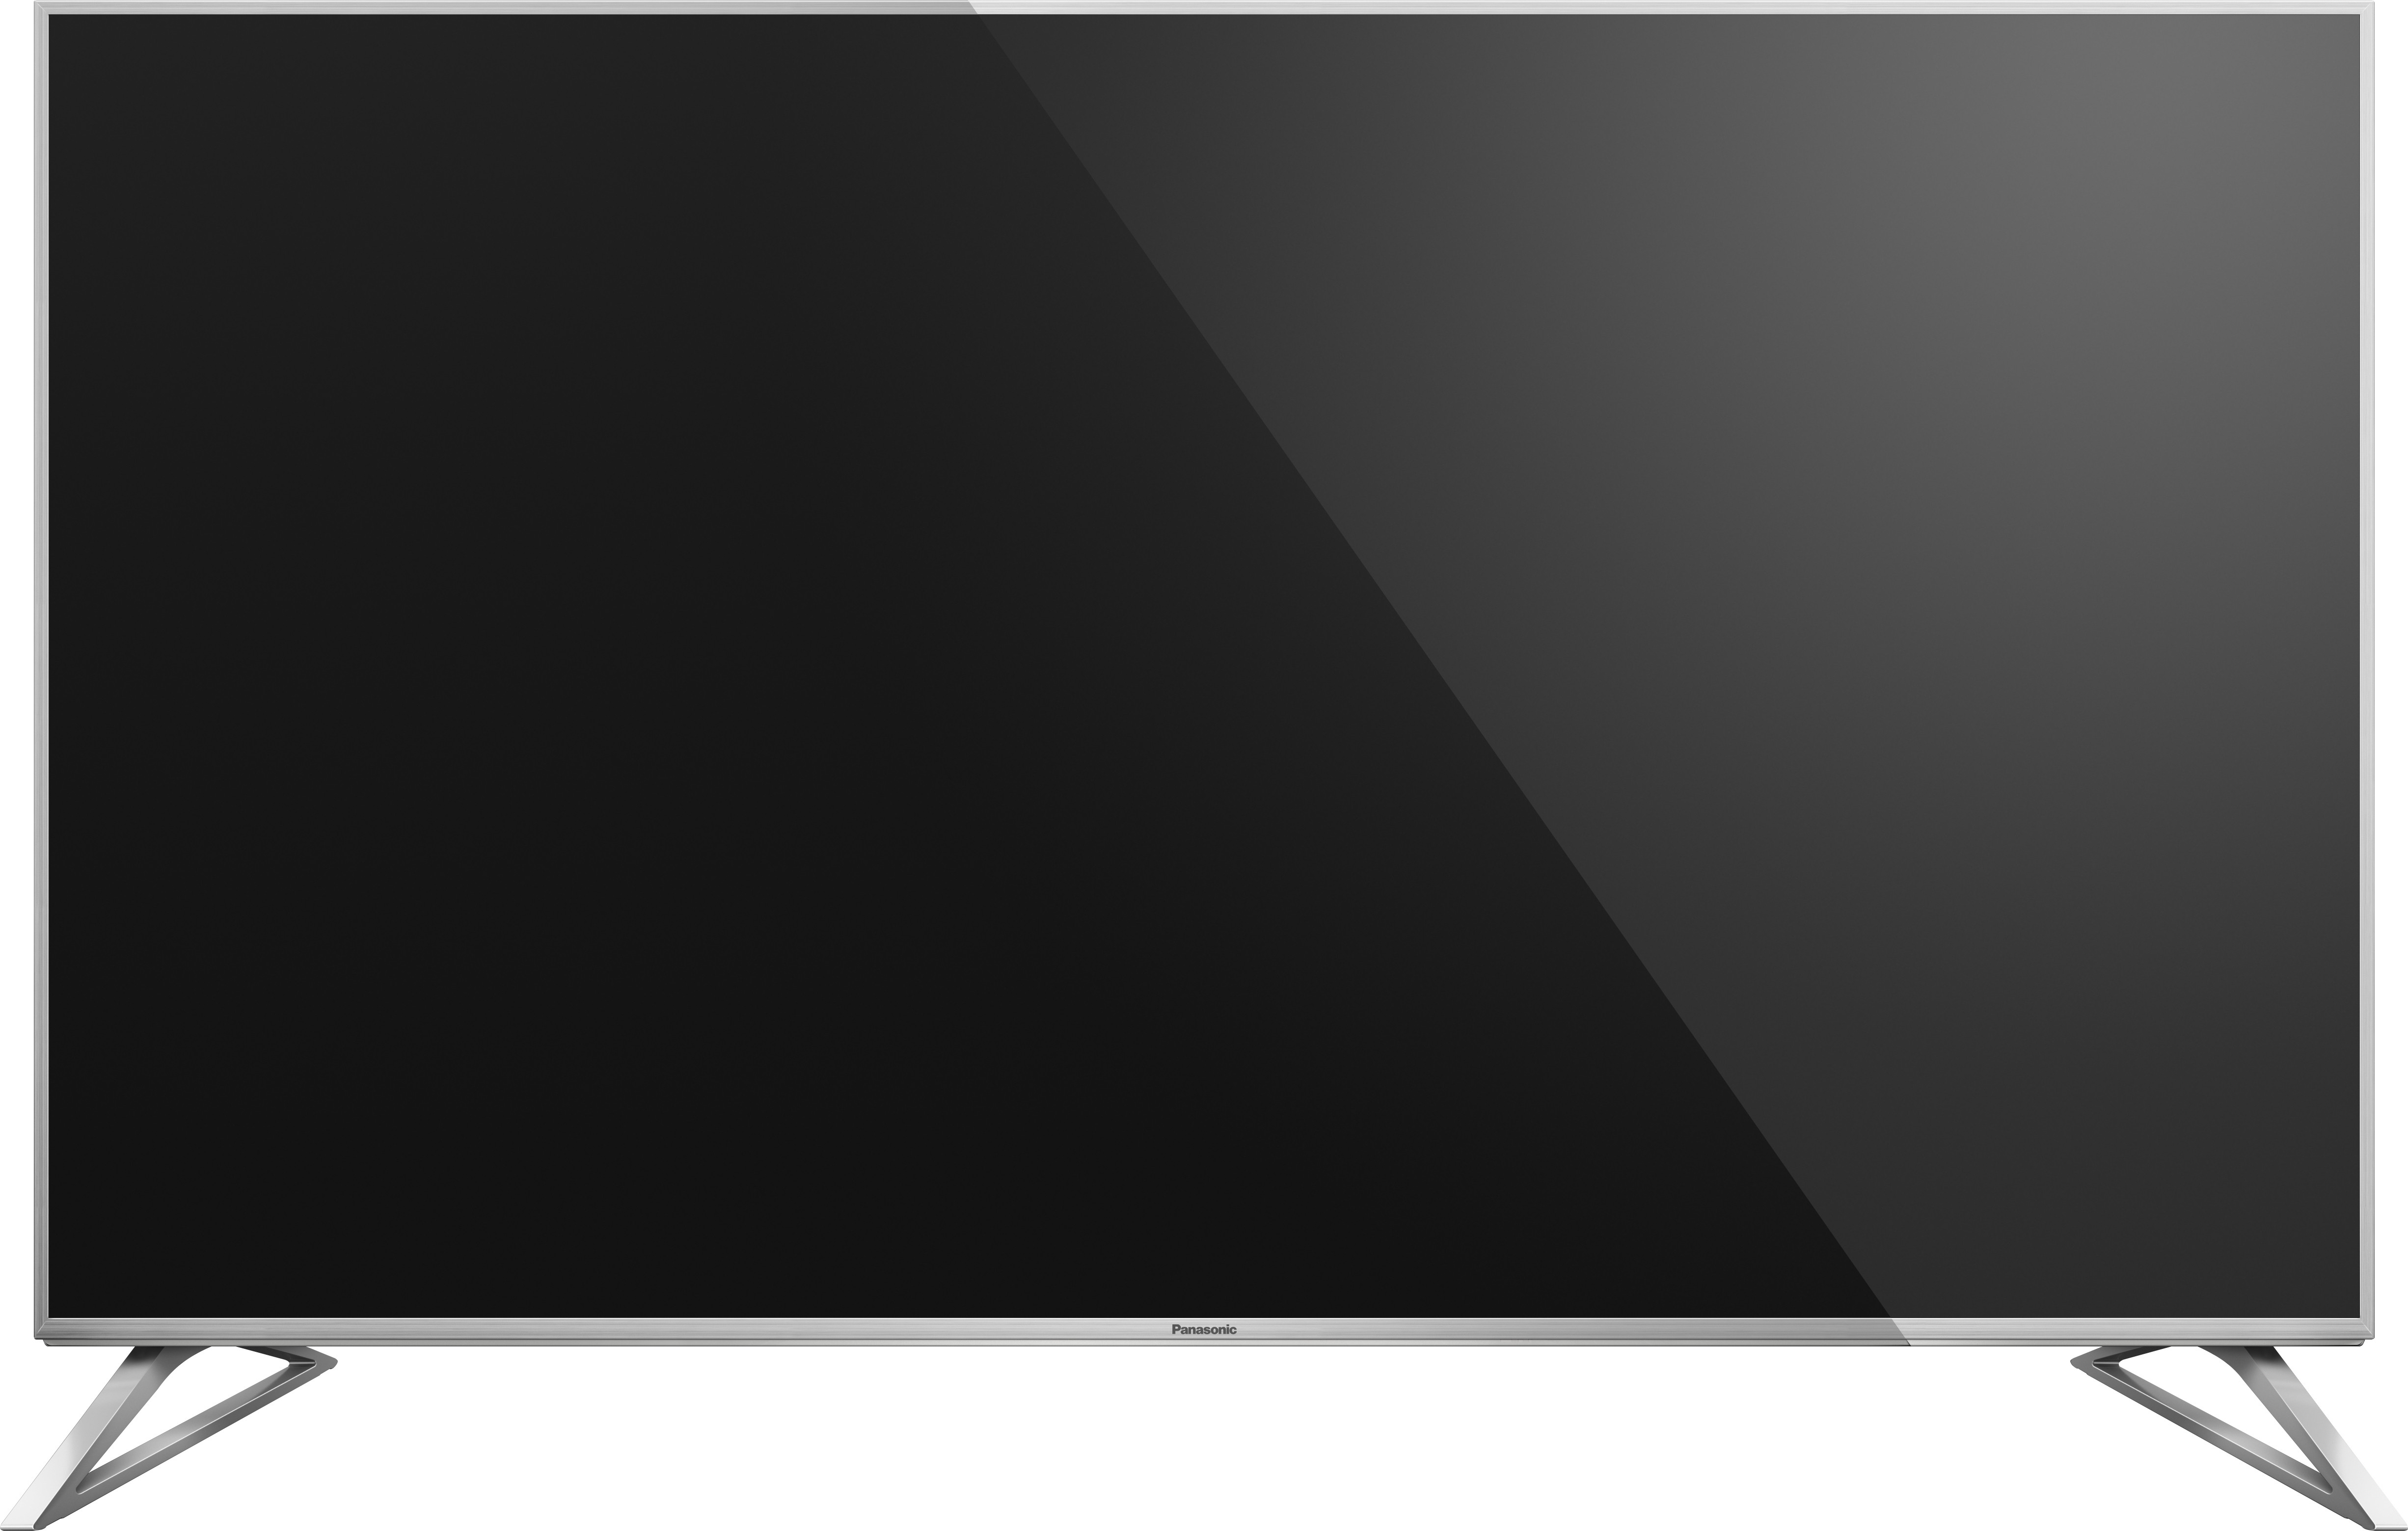 PANASONIC TH 65DX700D 65 Inches Ultra HD LED TV